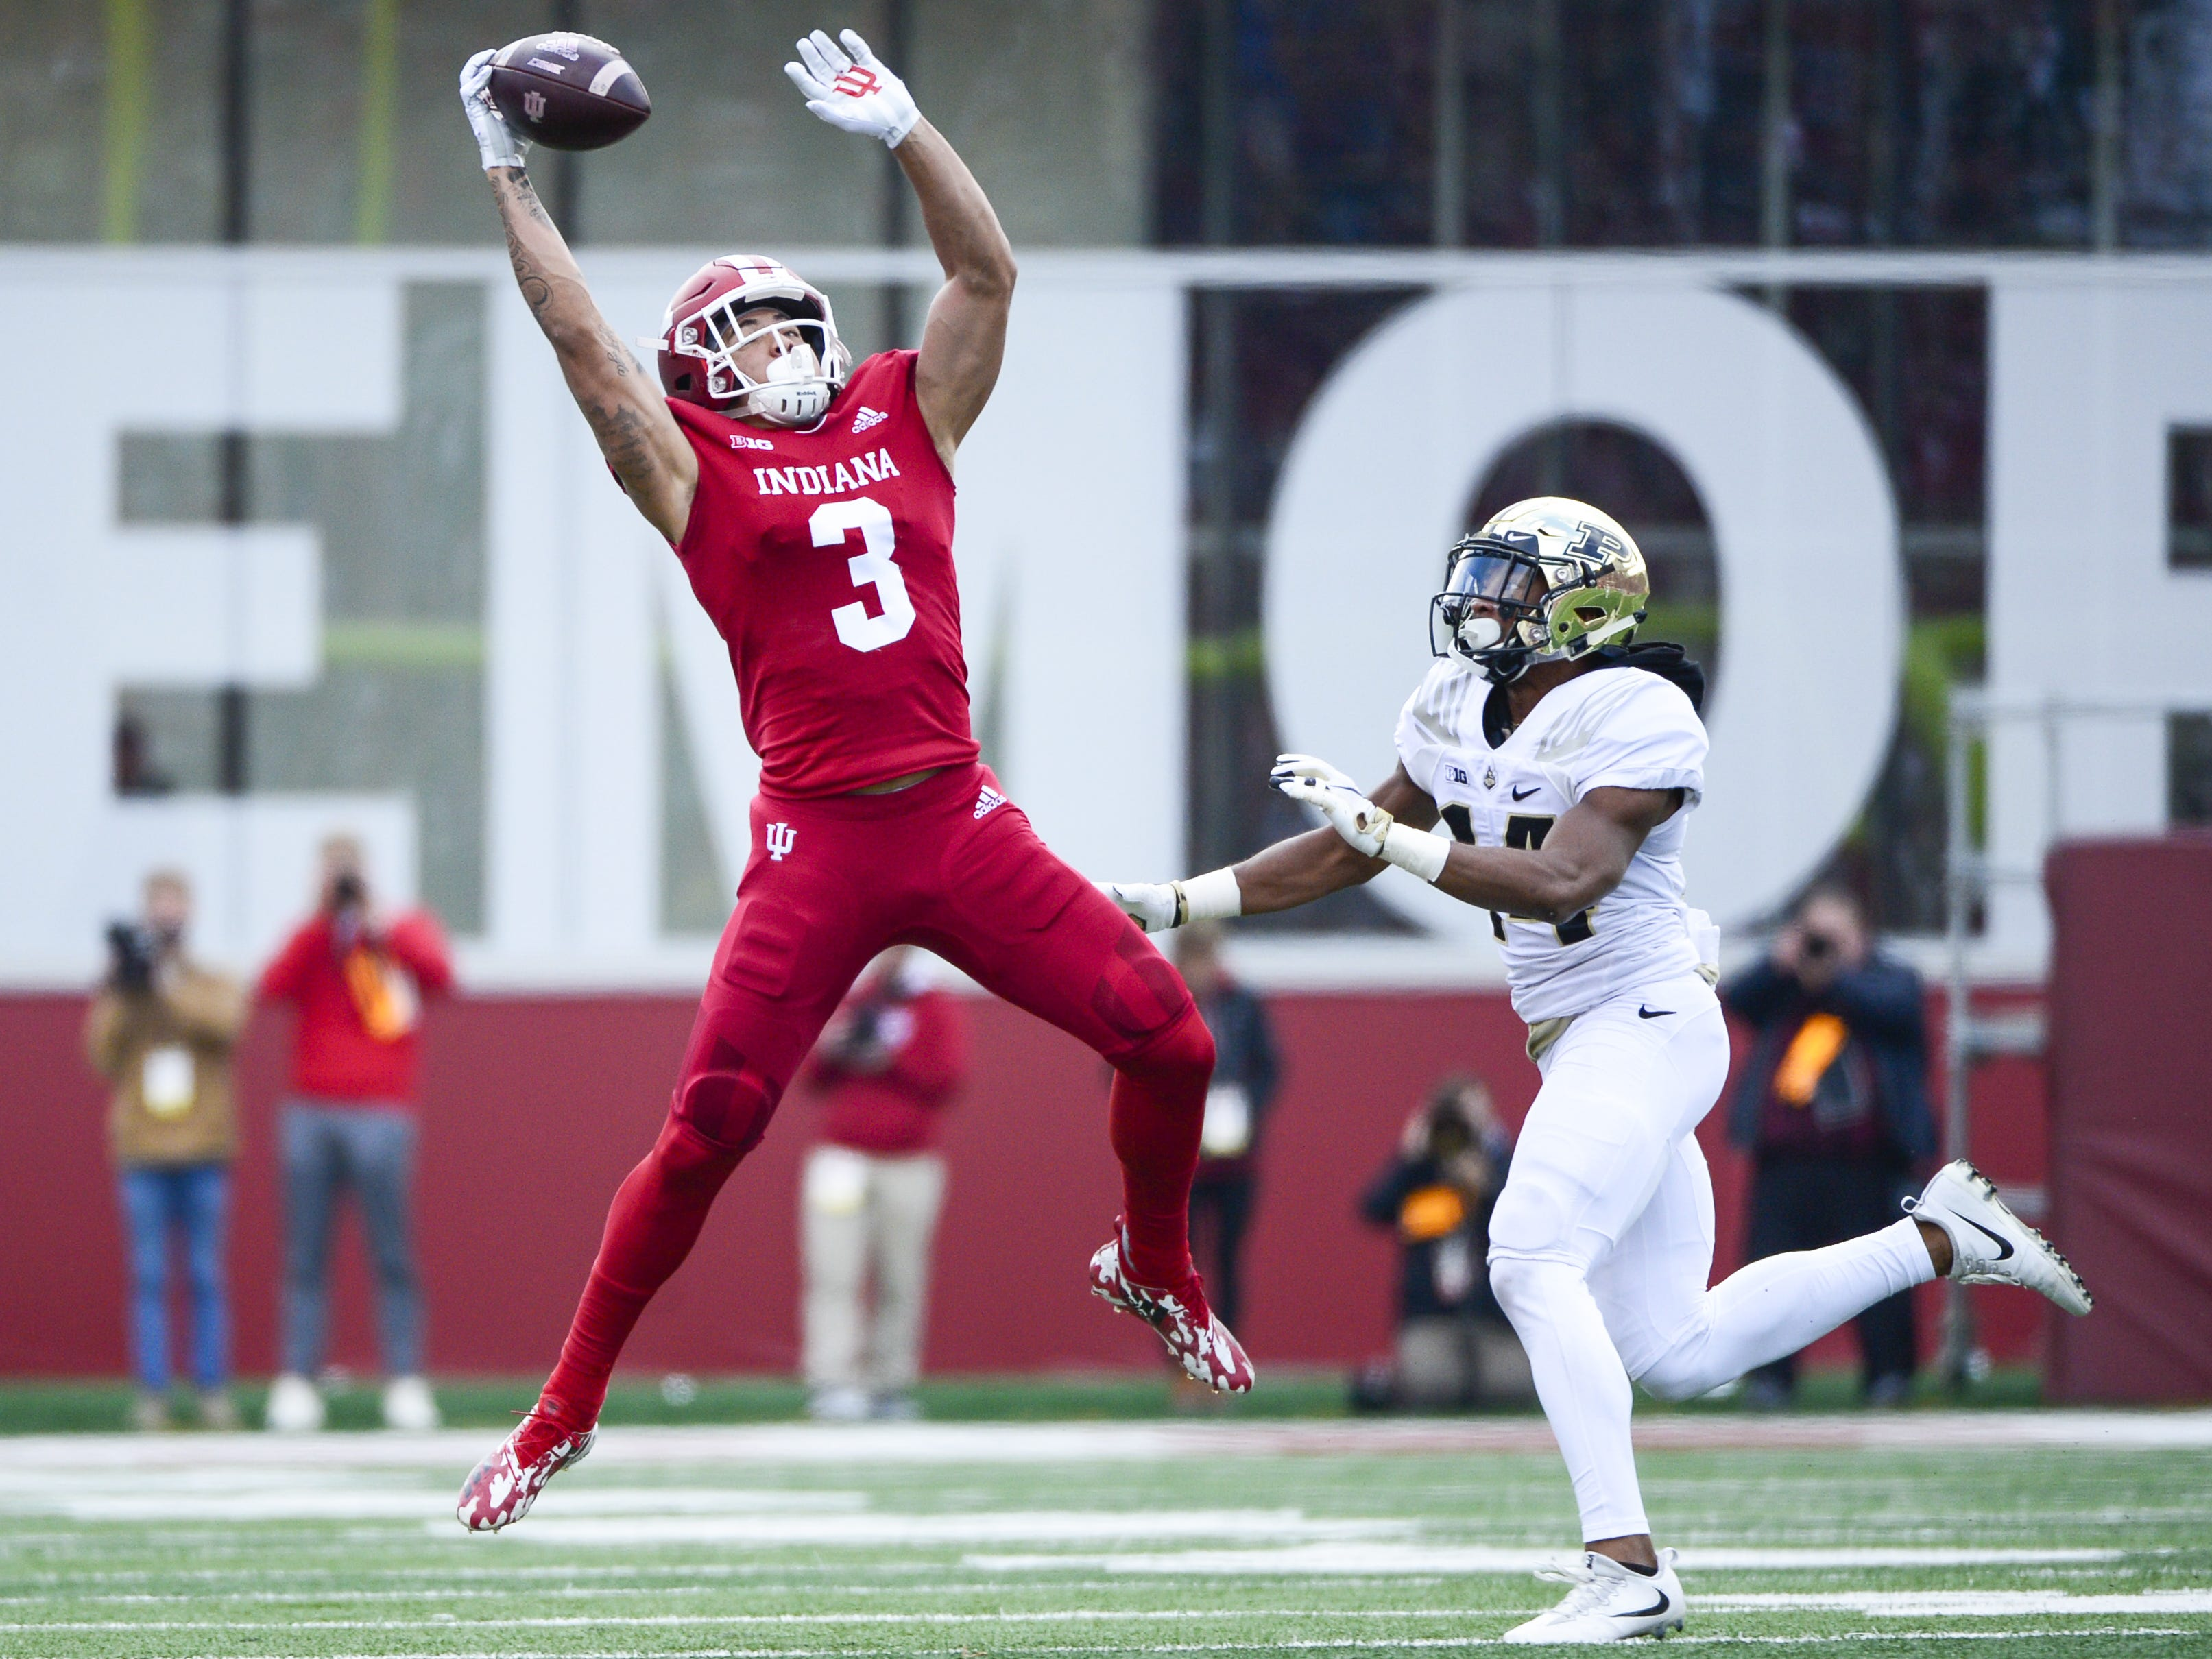 Indiana Hoosiers wide receiver Ty Fryfogle (3) jumps to a catch a pass during the game against Purdue at Memorial Stadium in Bloomington Ind., on Saturday, Nov. 24, 2018.